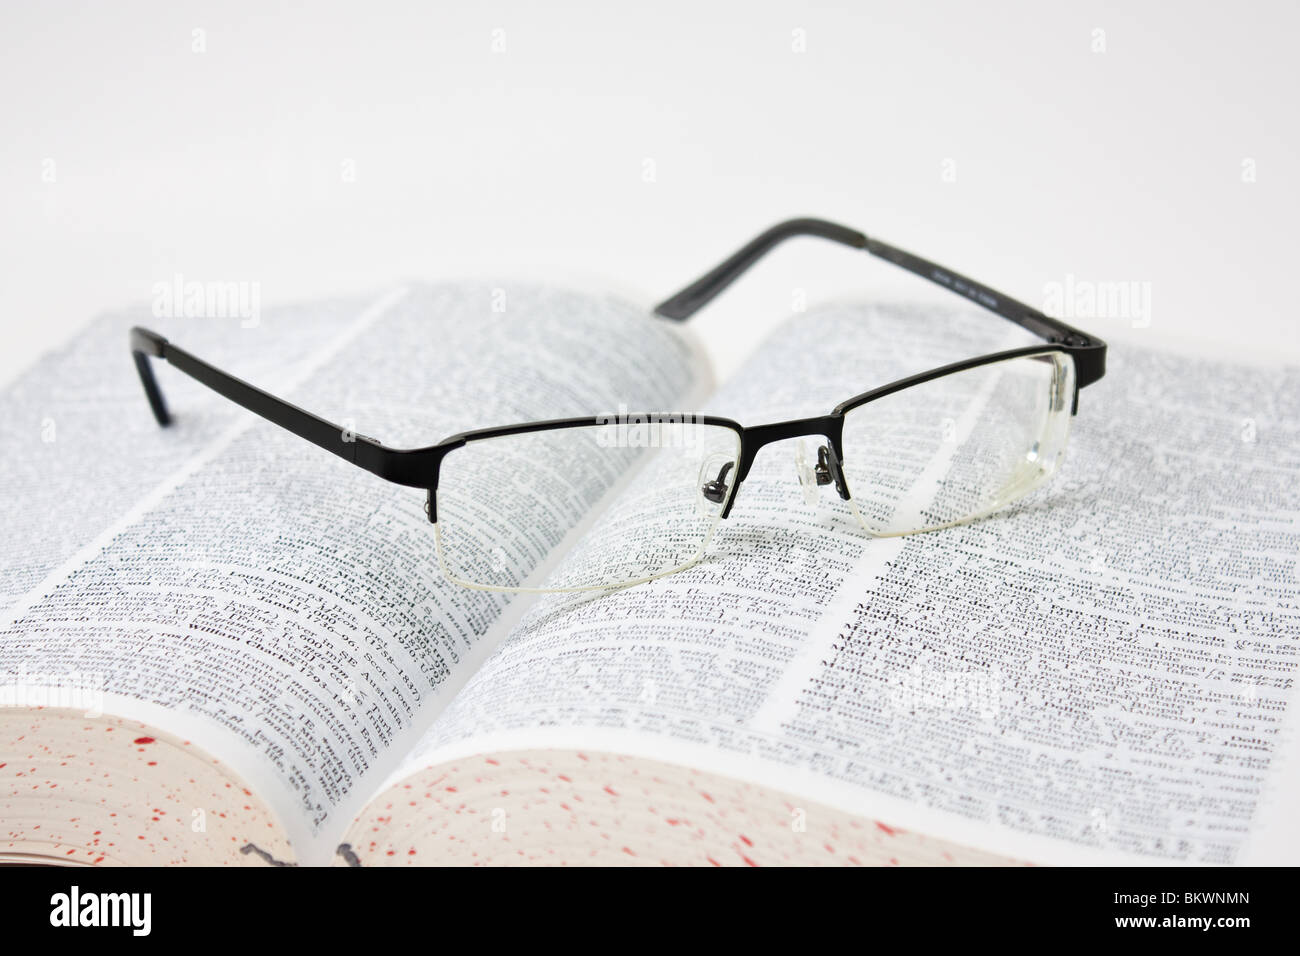 eyeglasses on dictionary - Stock Image